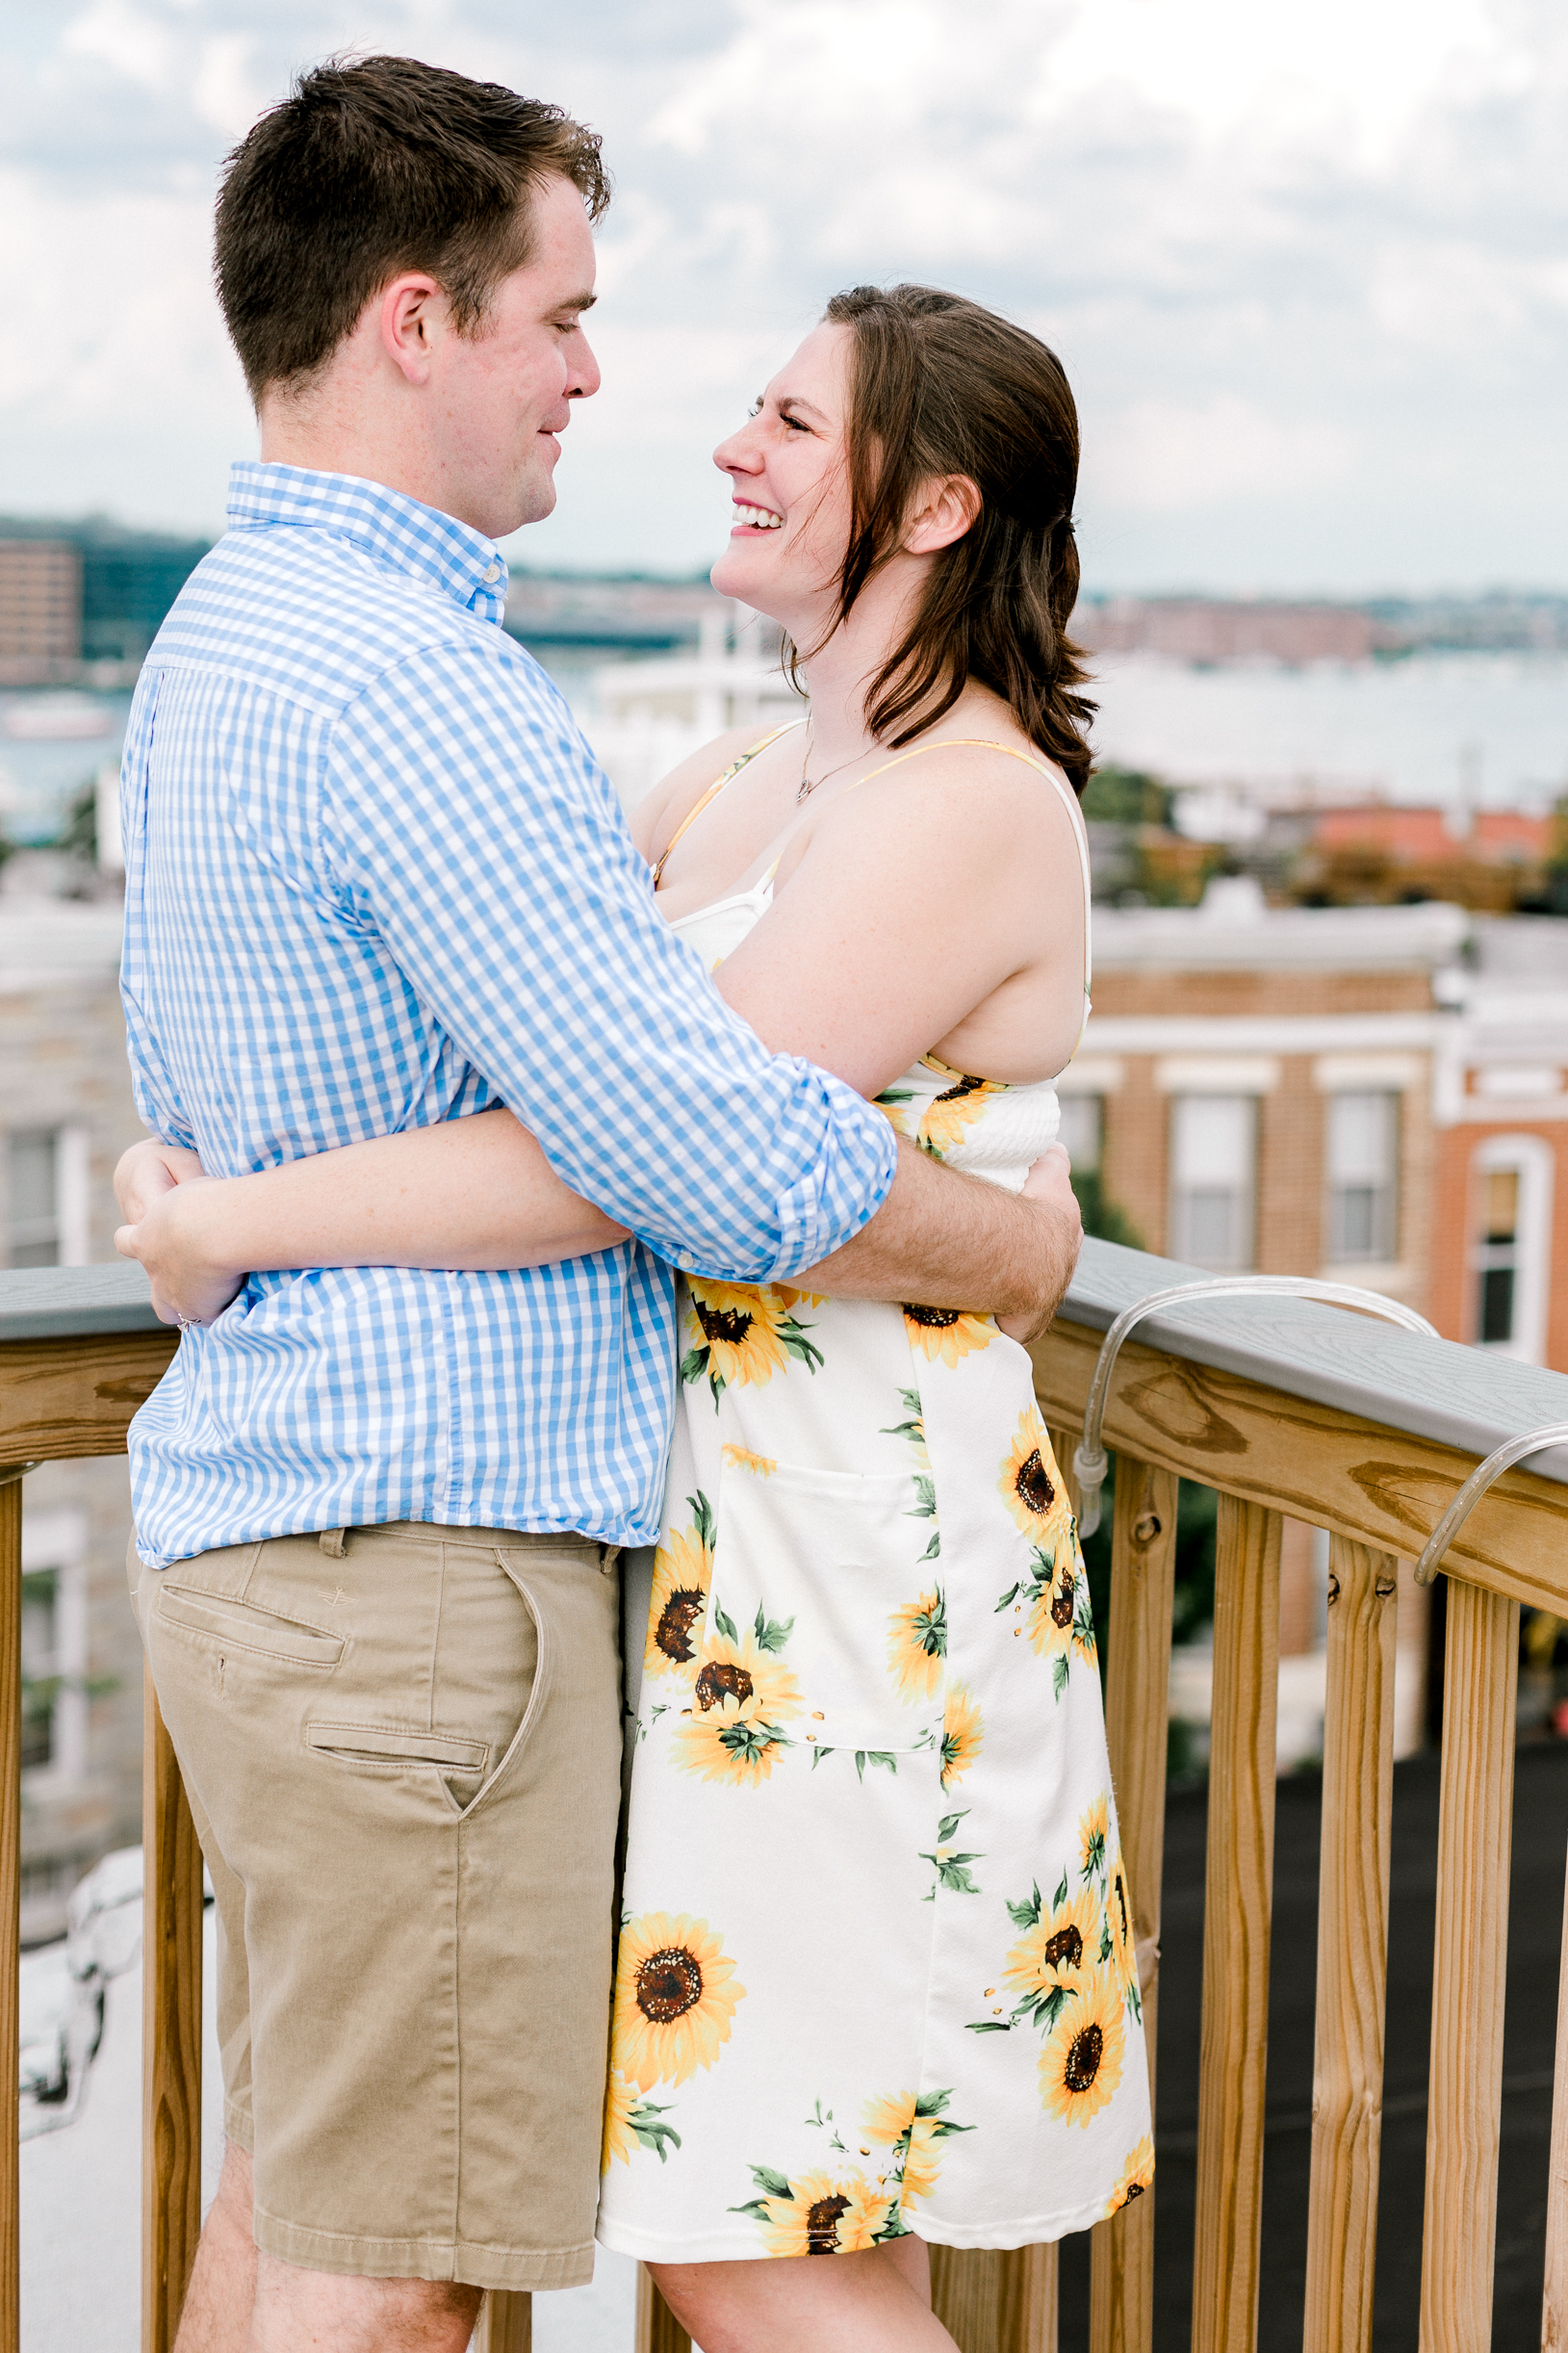 Baltimore Federal Hill Park Stormy Engagement Session Lytle Photo Co (5 of 92).jpg